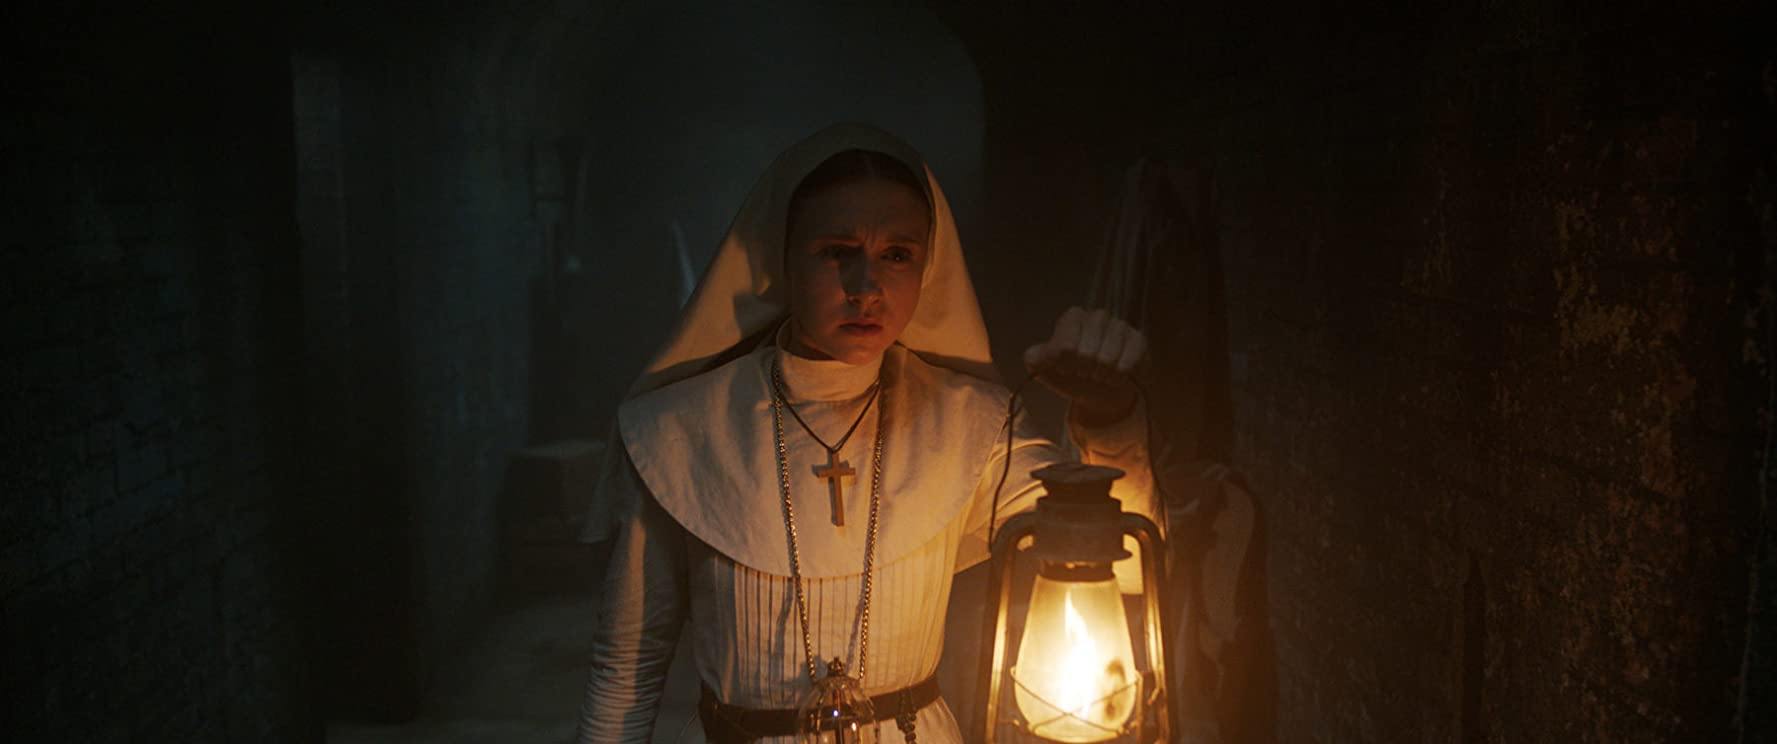 Taissa Farmiga in The Nun movie review a freira filme crítica